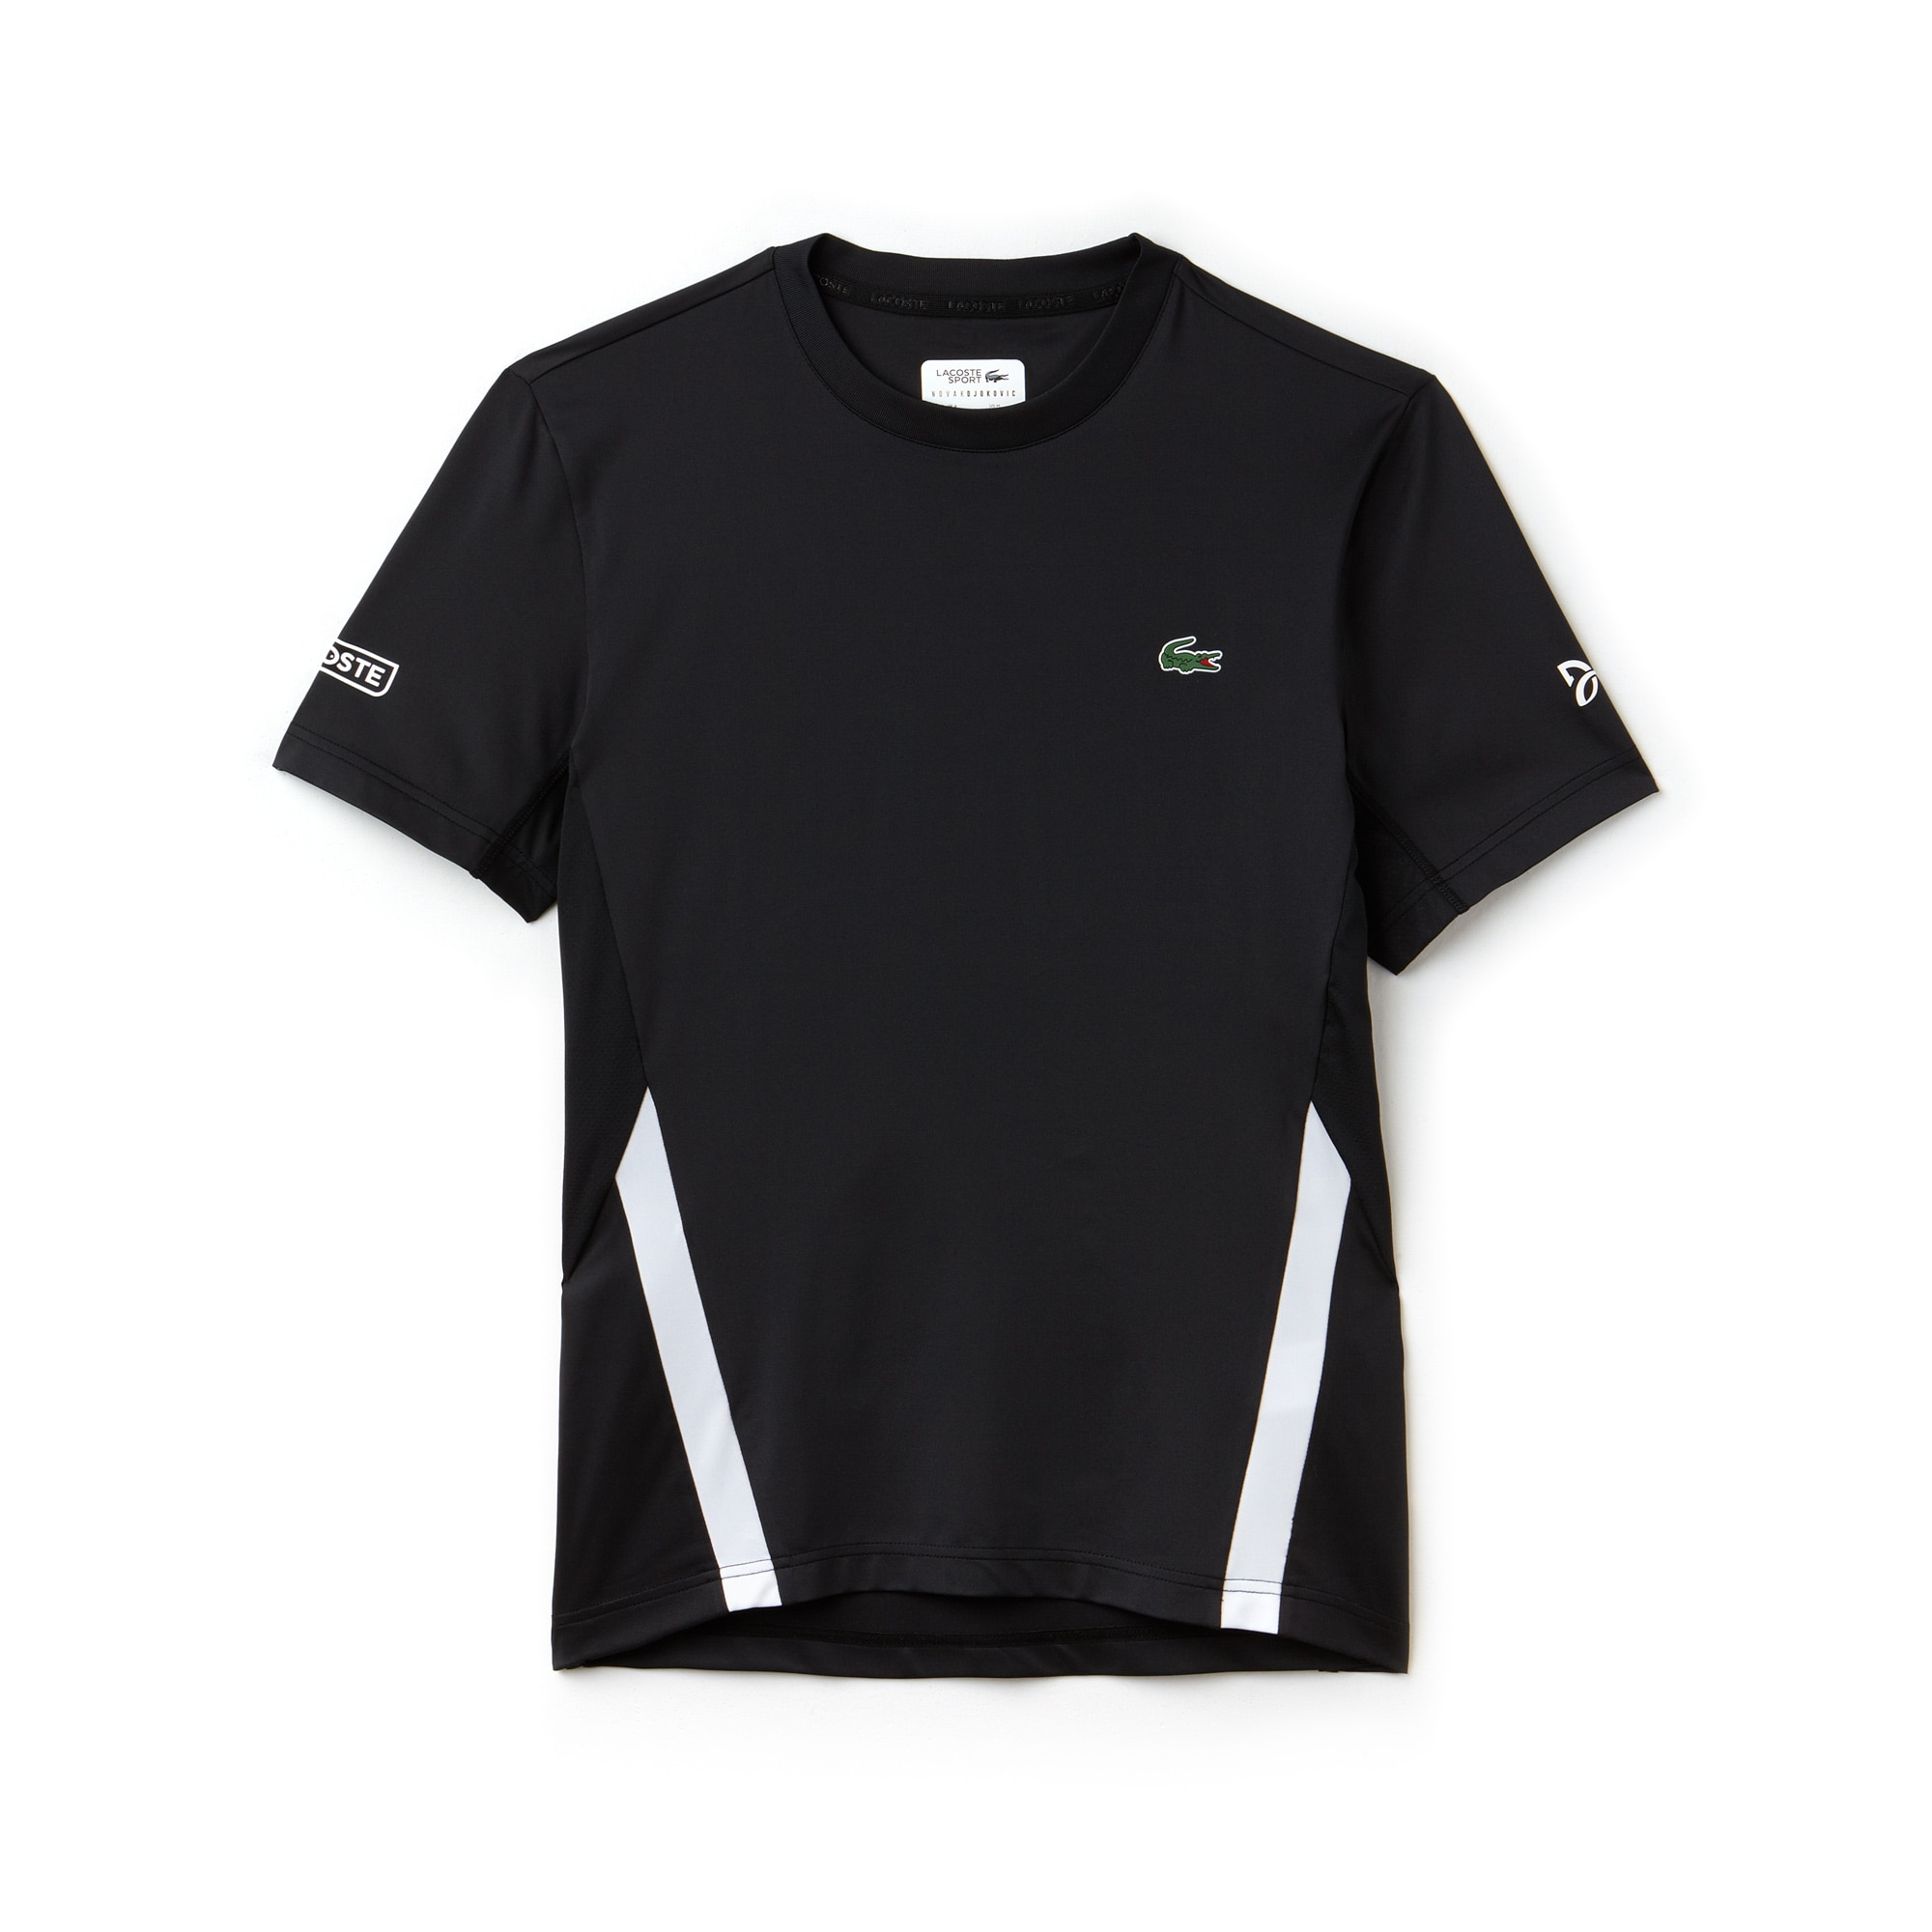 Men's SPORT Crew Neck Stretch Technical Jersey T-shirt - Lacoste x Novak Djokovic Off Court Premium Edition